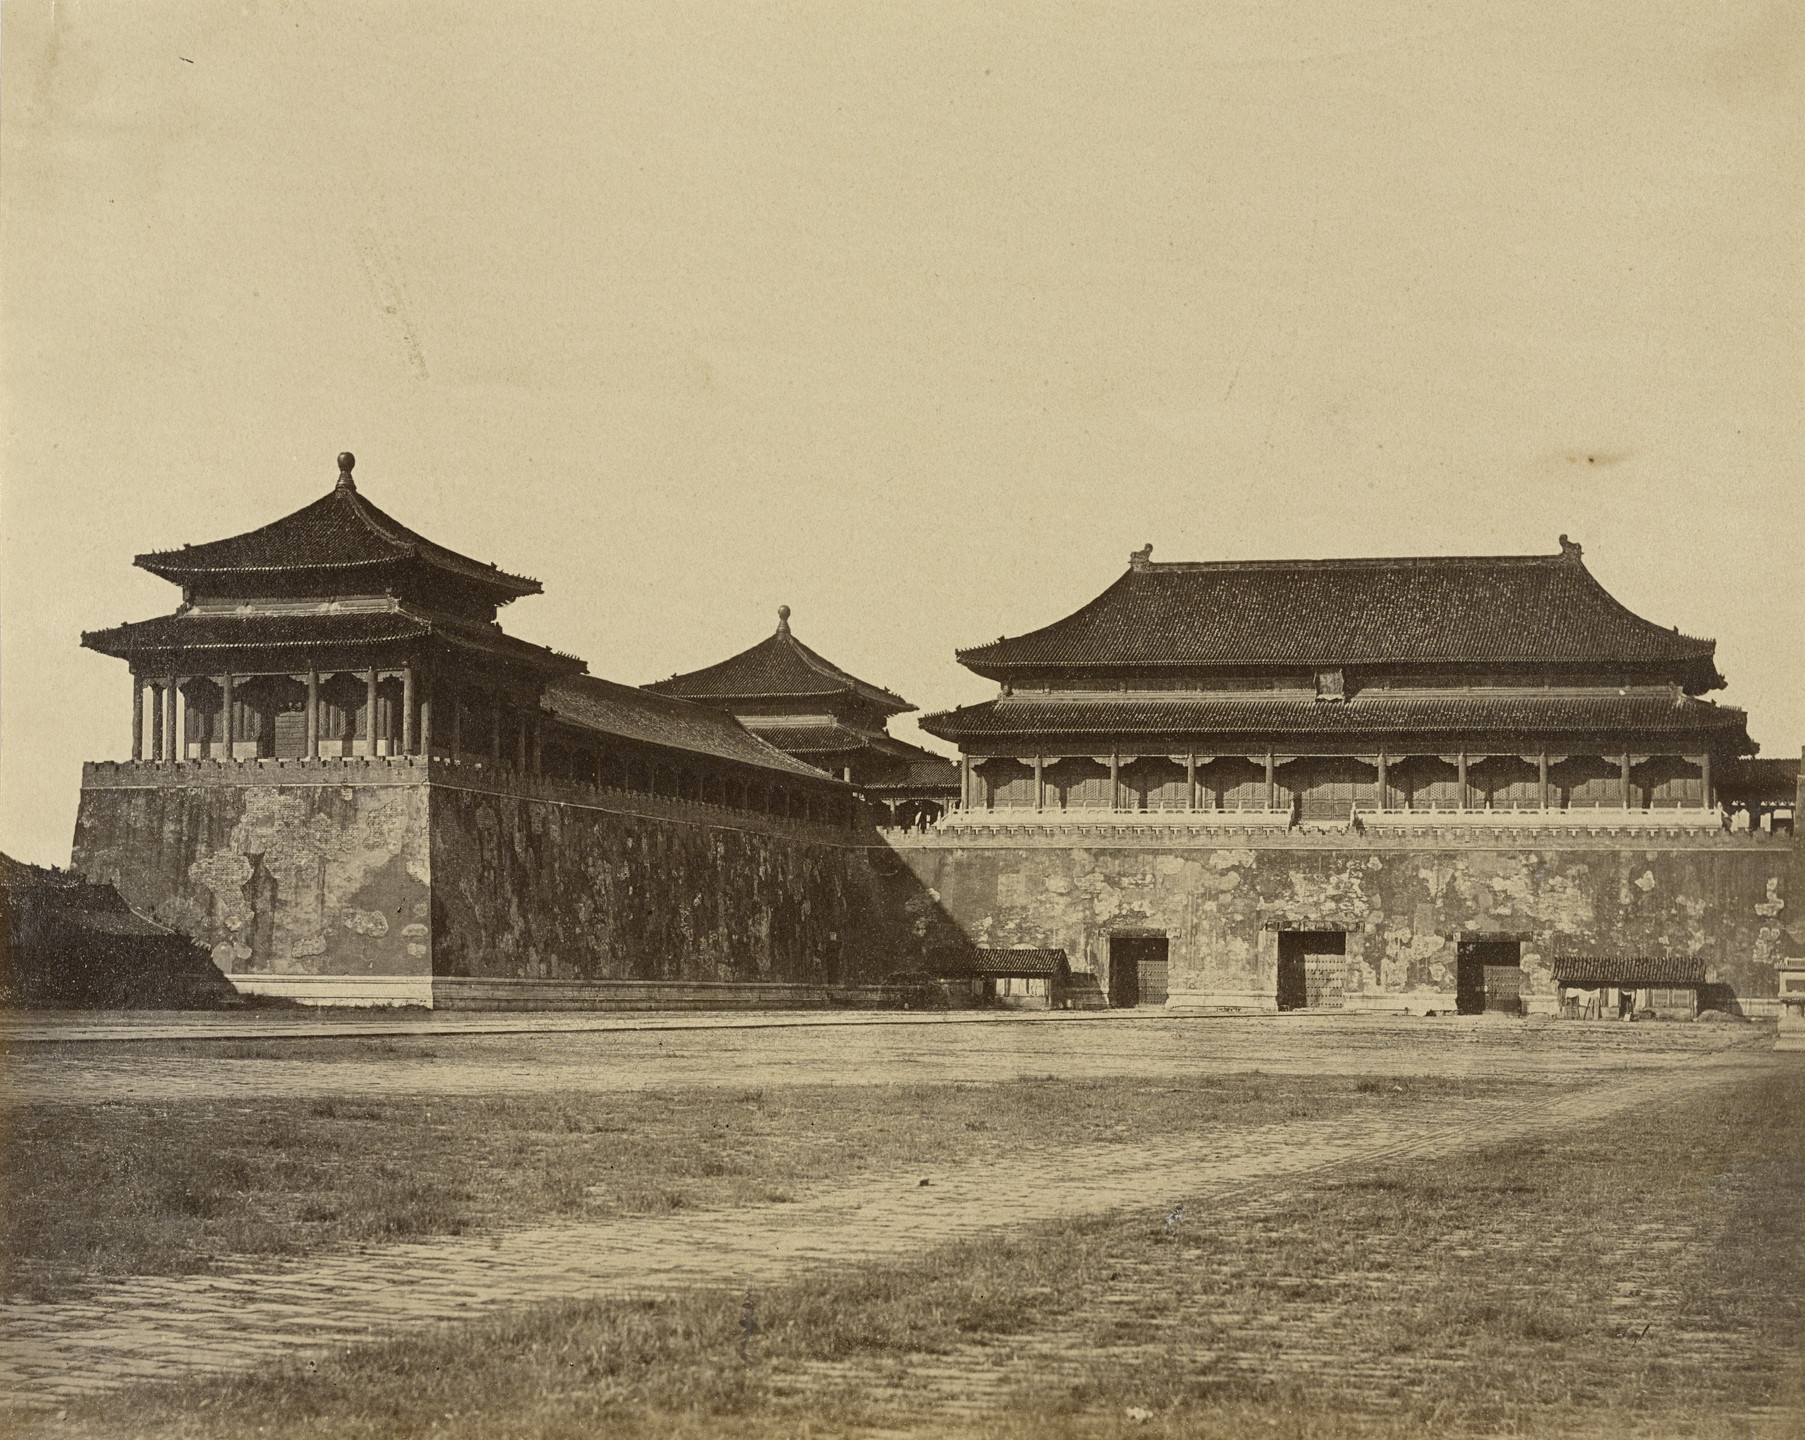 Felice Beato. The Great Imperial Palace, Pekin. October 29, 1860